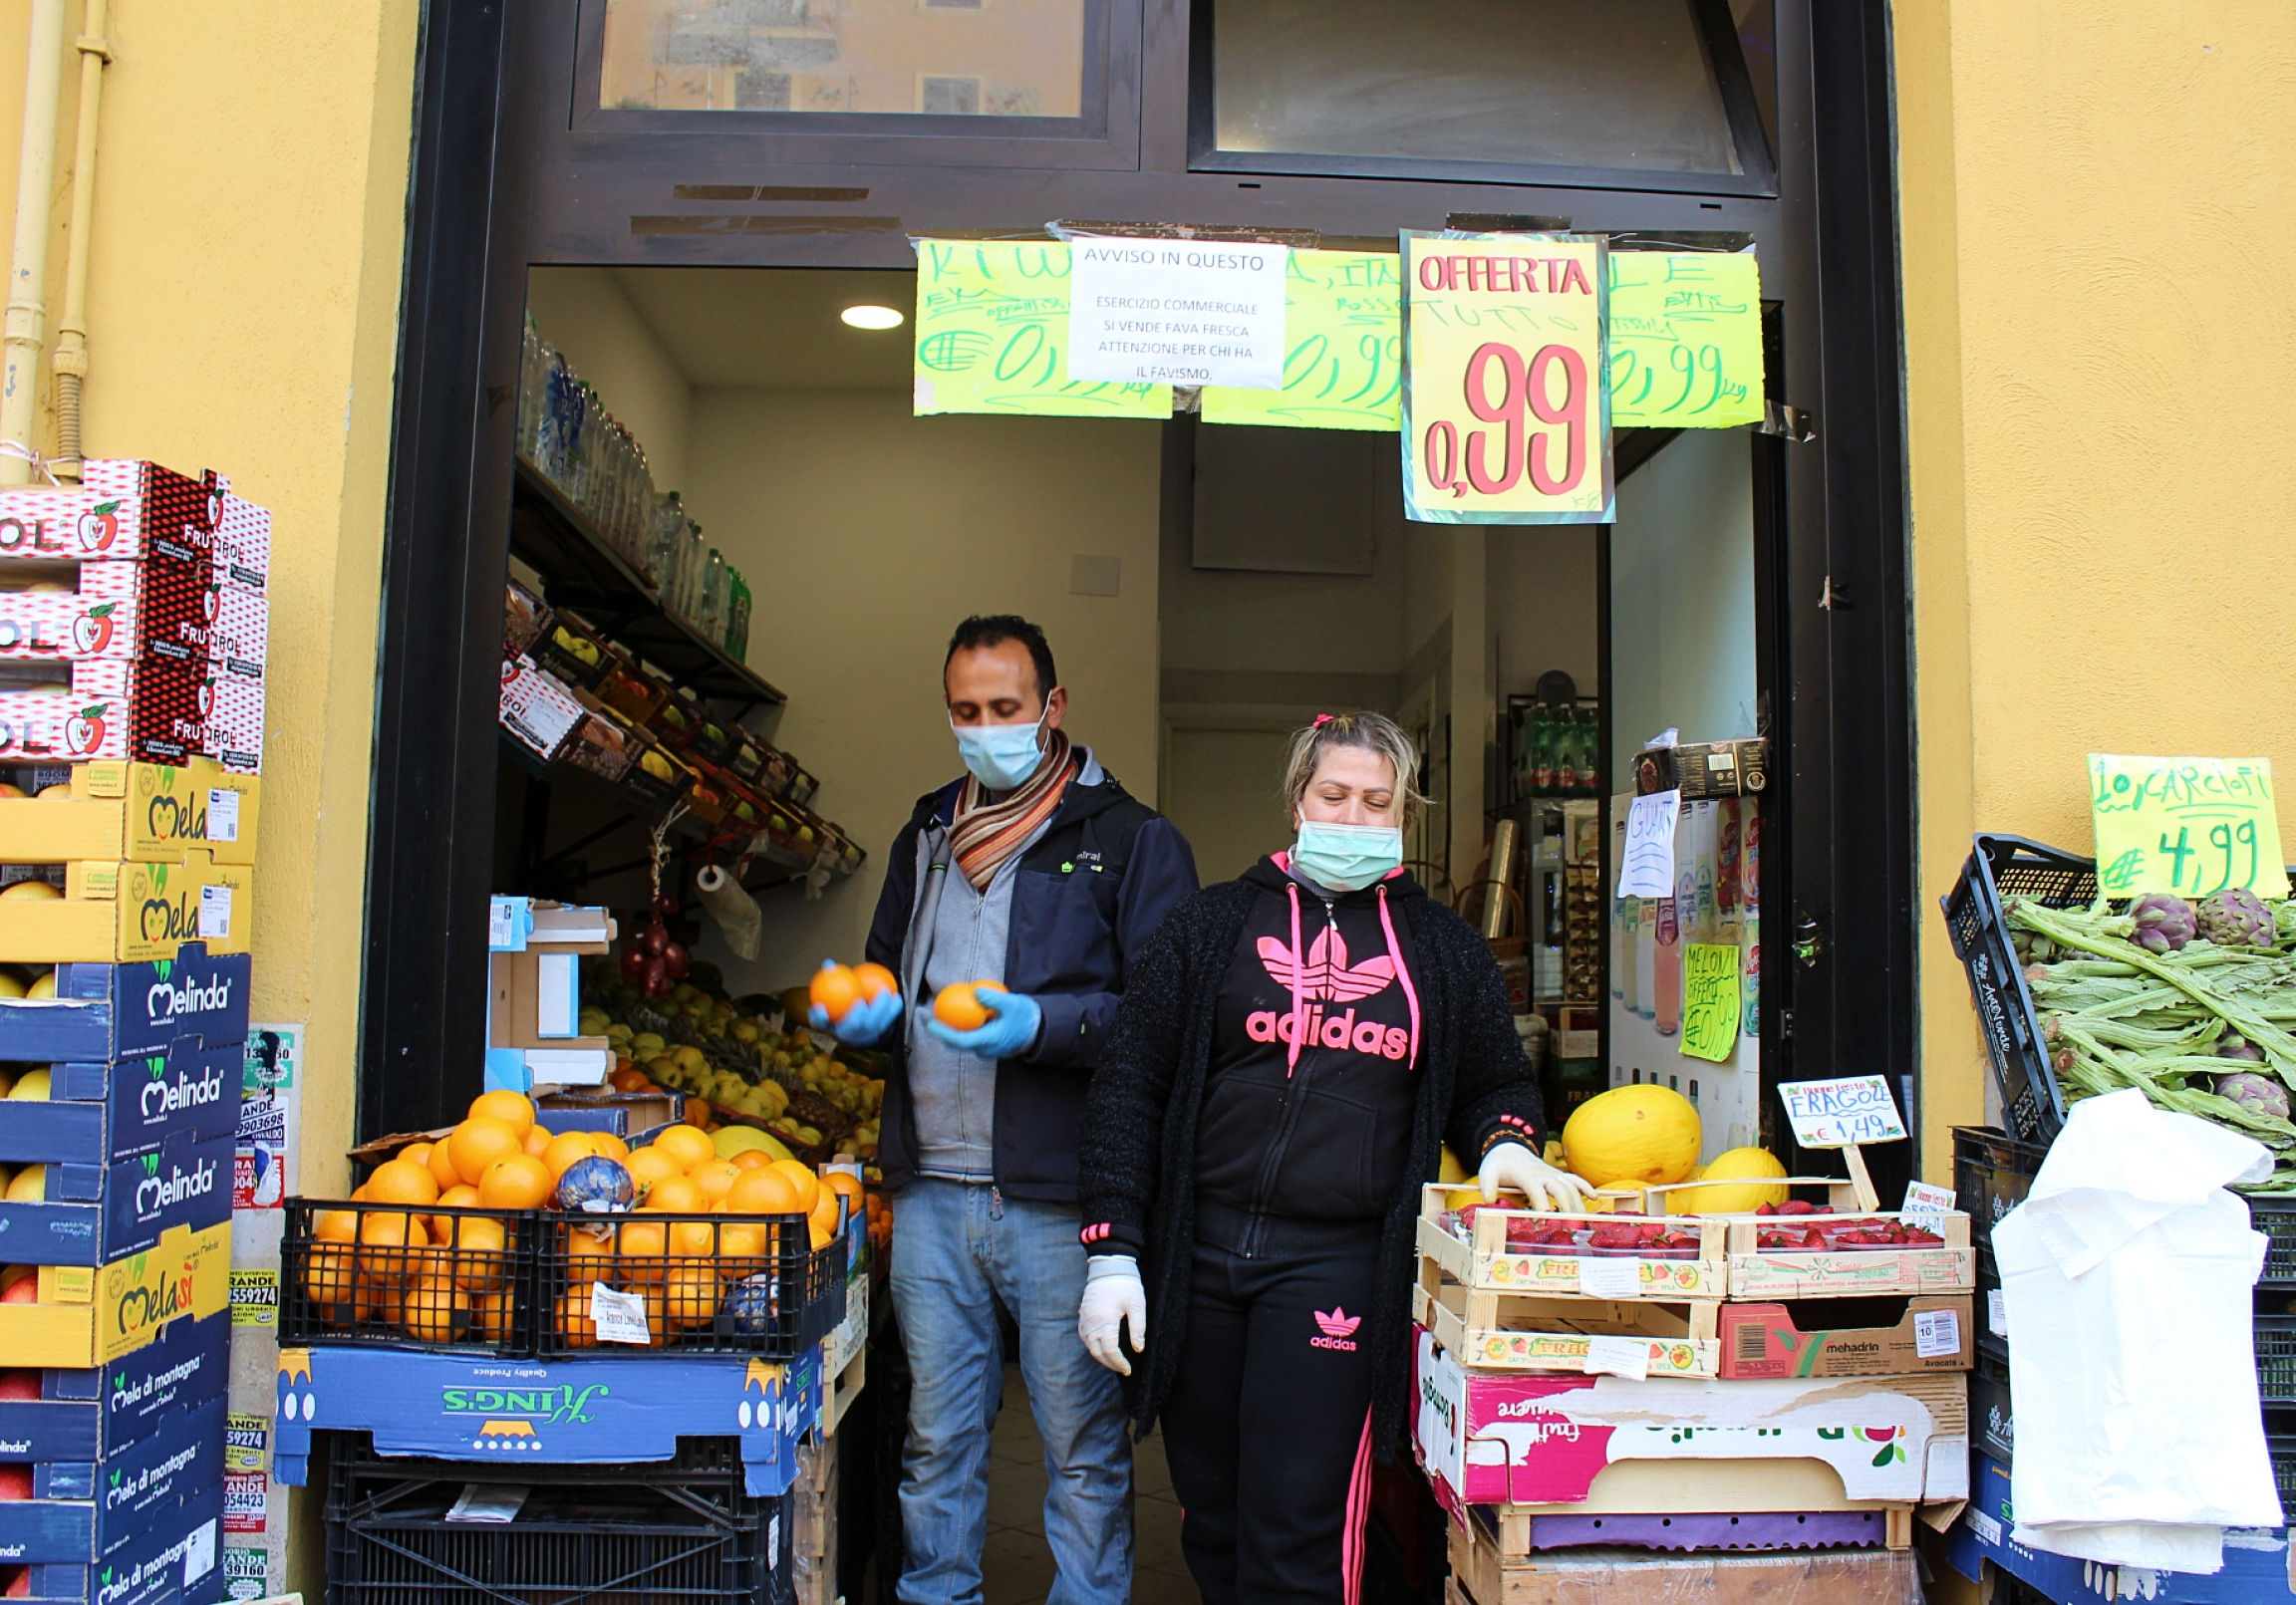 Groceries, like thisfruit shop in Torpignattara, Italy, are allowed to stay open